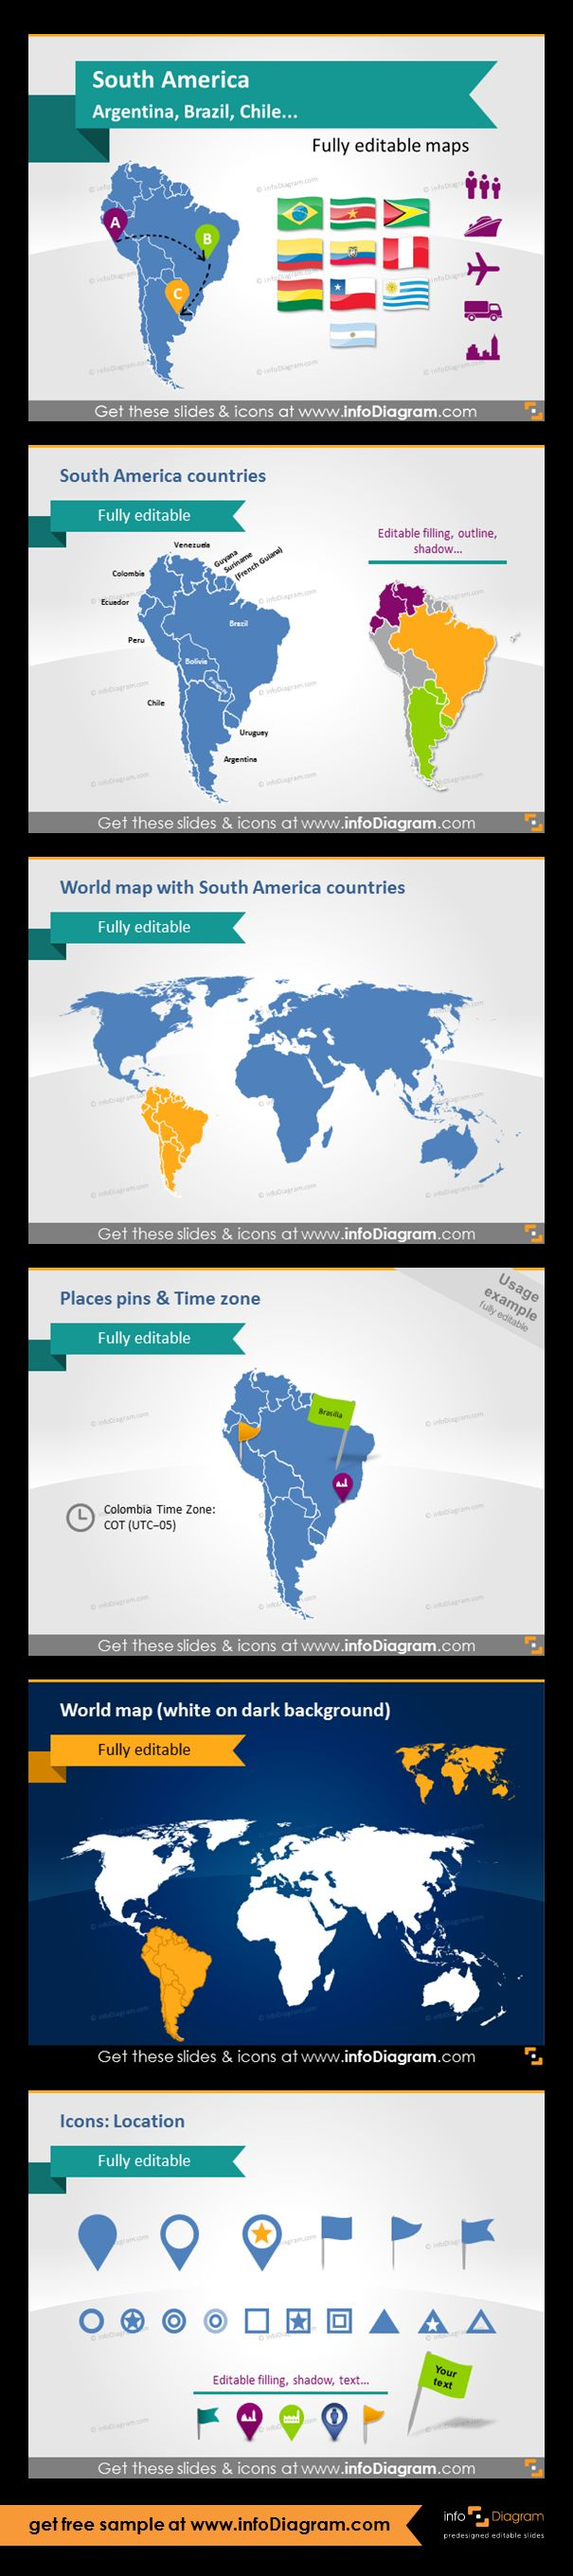 South America countries - editable PowerPoint maps, localization and transport icons, country statistics. Fully editable maps, icons, arrows. South America countries, South America on the world map, Places pins and indicating time zone, world map on dark background, location icons.